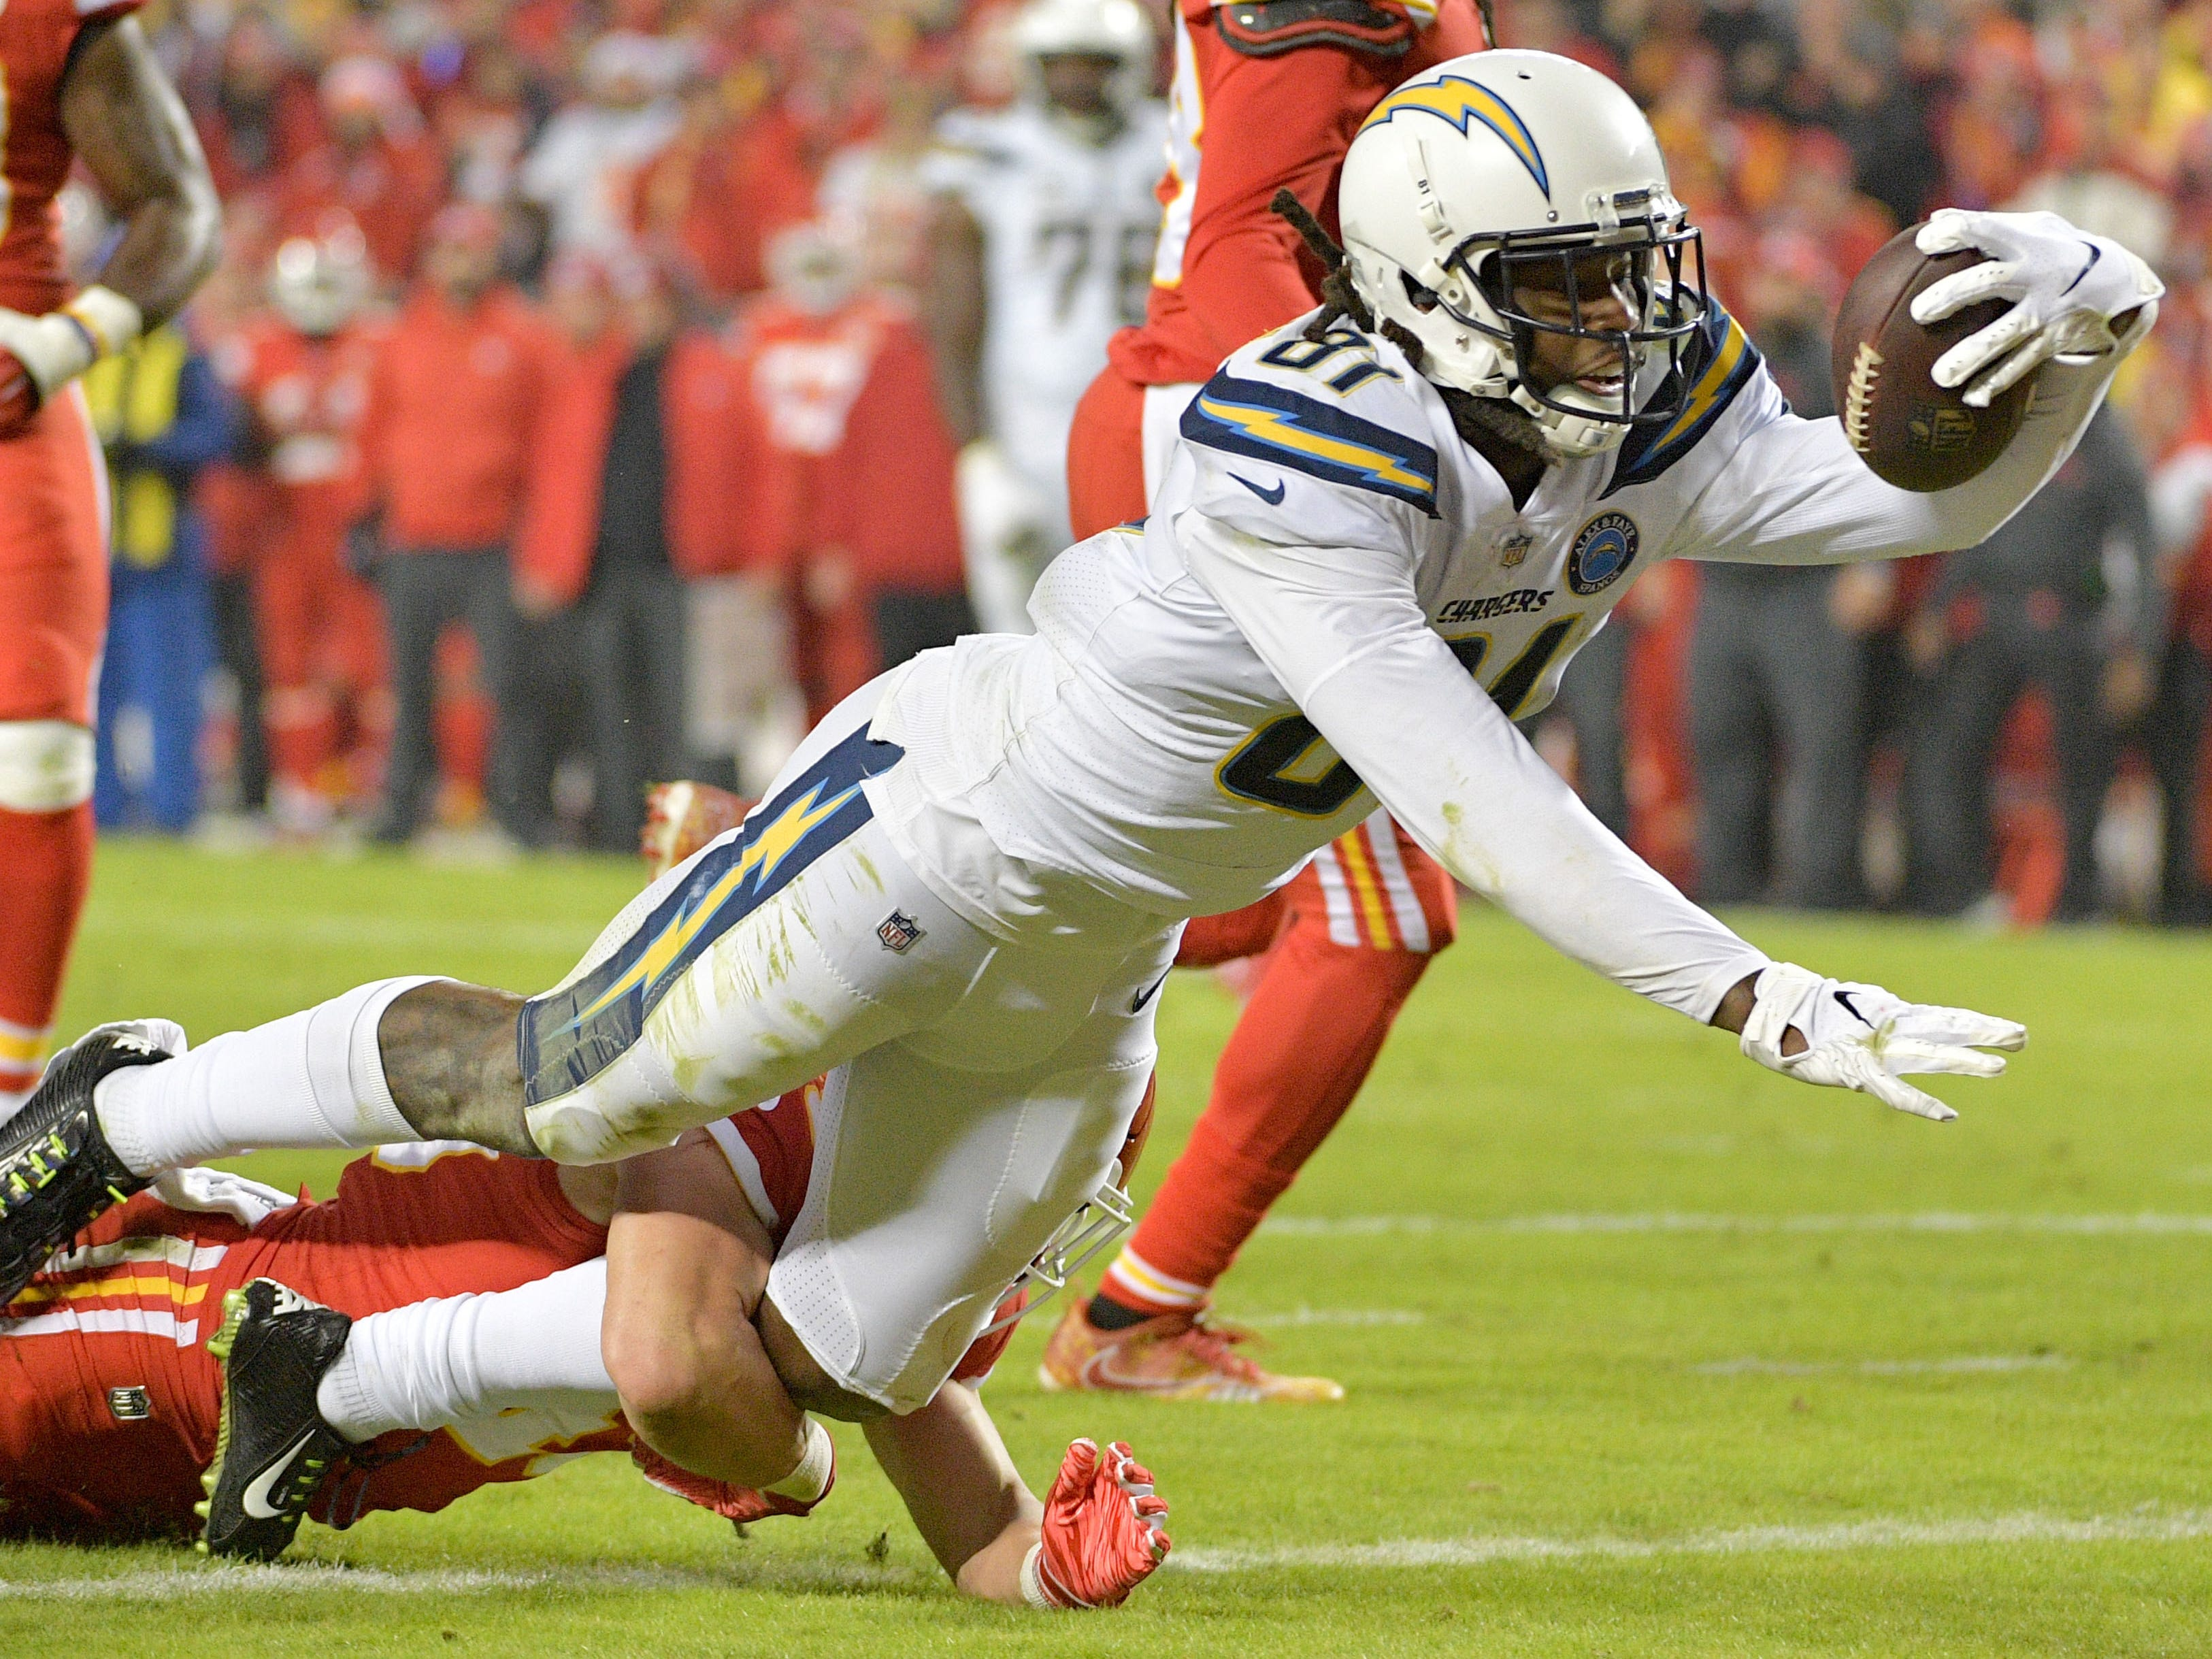 Los Angeles Chargers wide receiver Mike Williams runs in for a touchdown against the Kansas City Chiefs during the second half at Arrowhead Stadium.